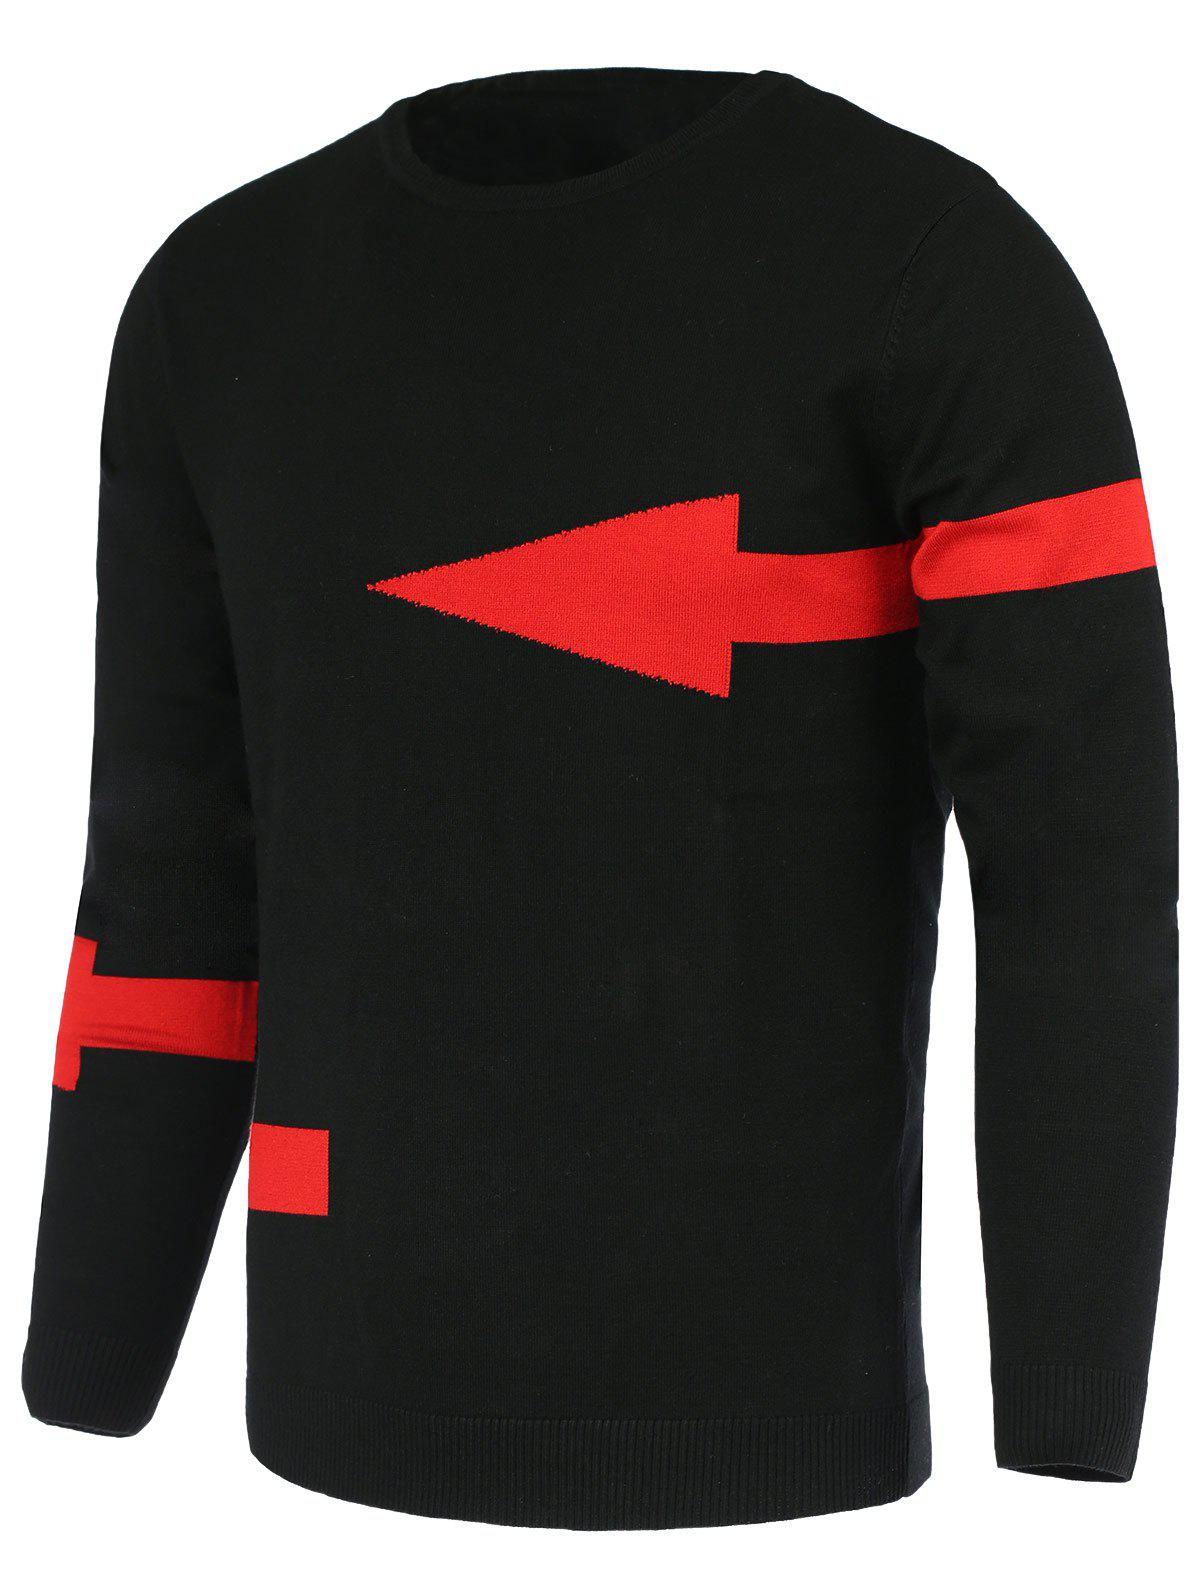 Solid Color Arrows Pattern Slimming Men's Round Neck Long Sleeves Sweater - BLACK 2XL